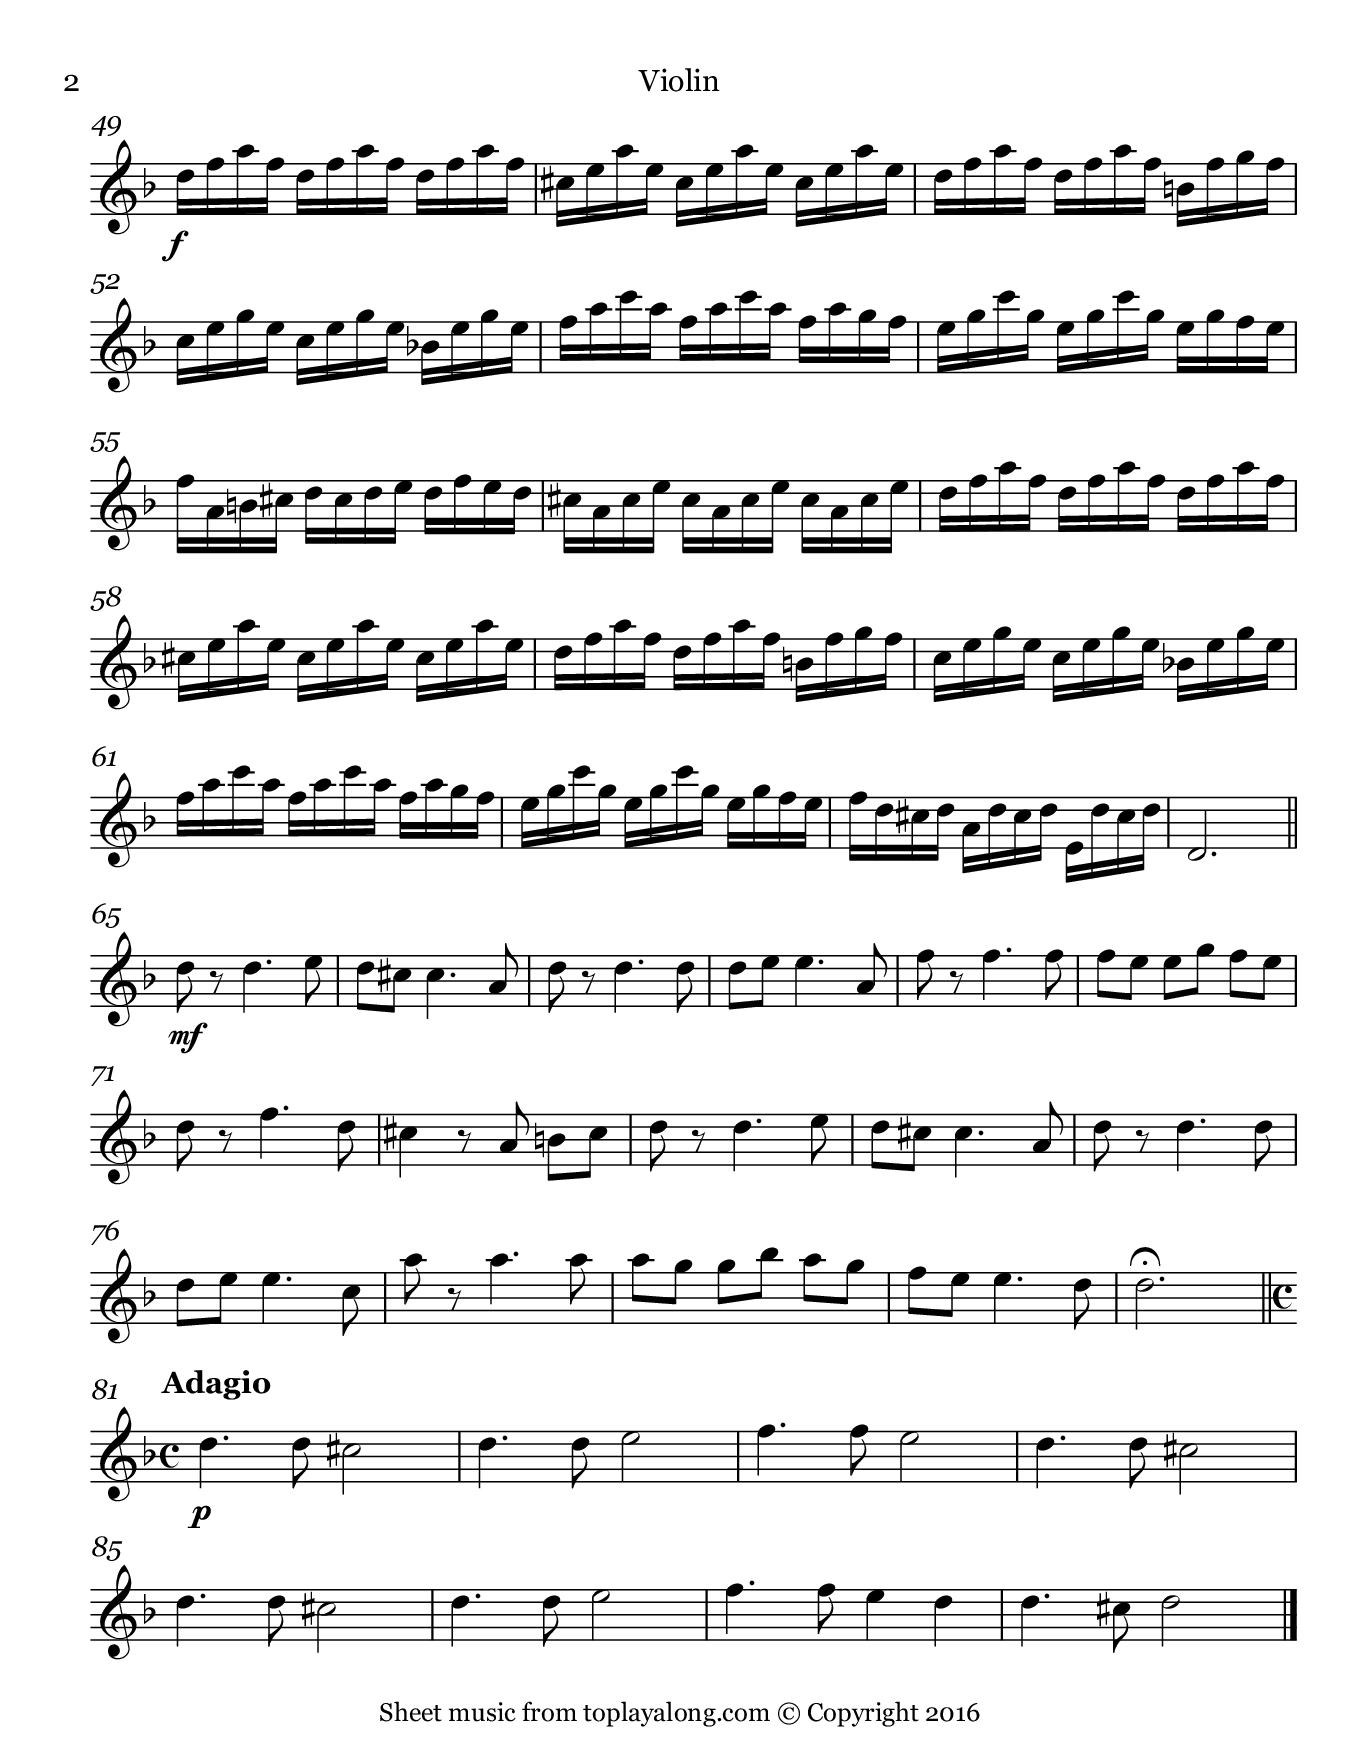 La Folia by Corelli. Sheet music for Violin, page 2.